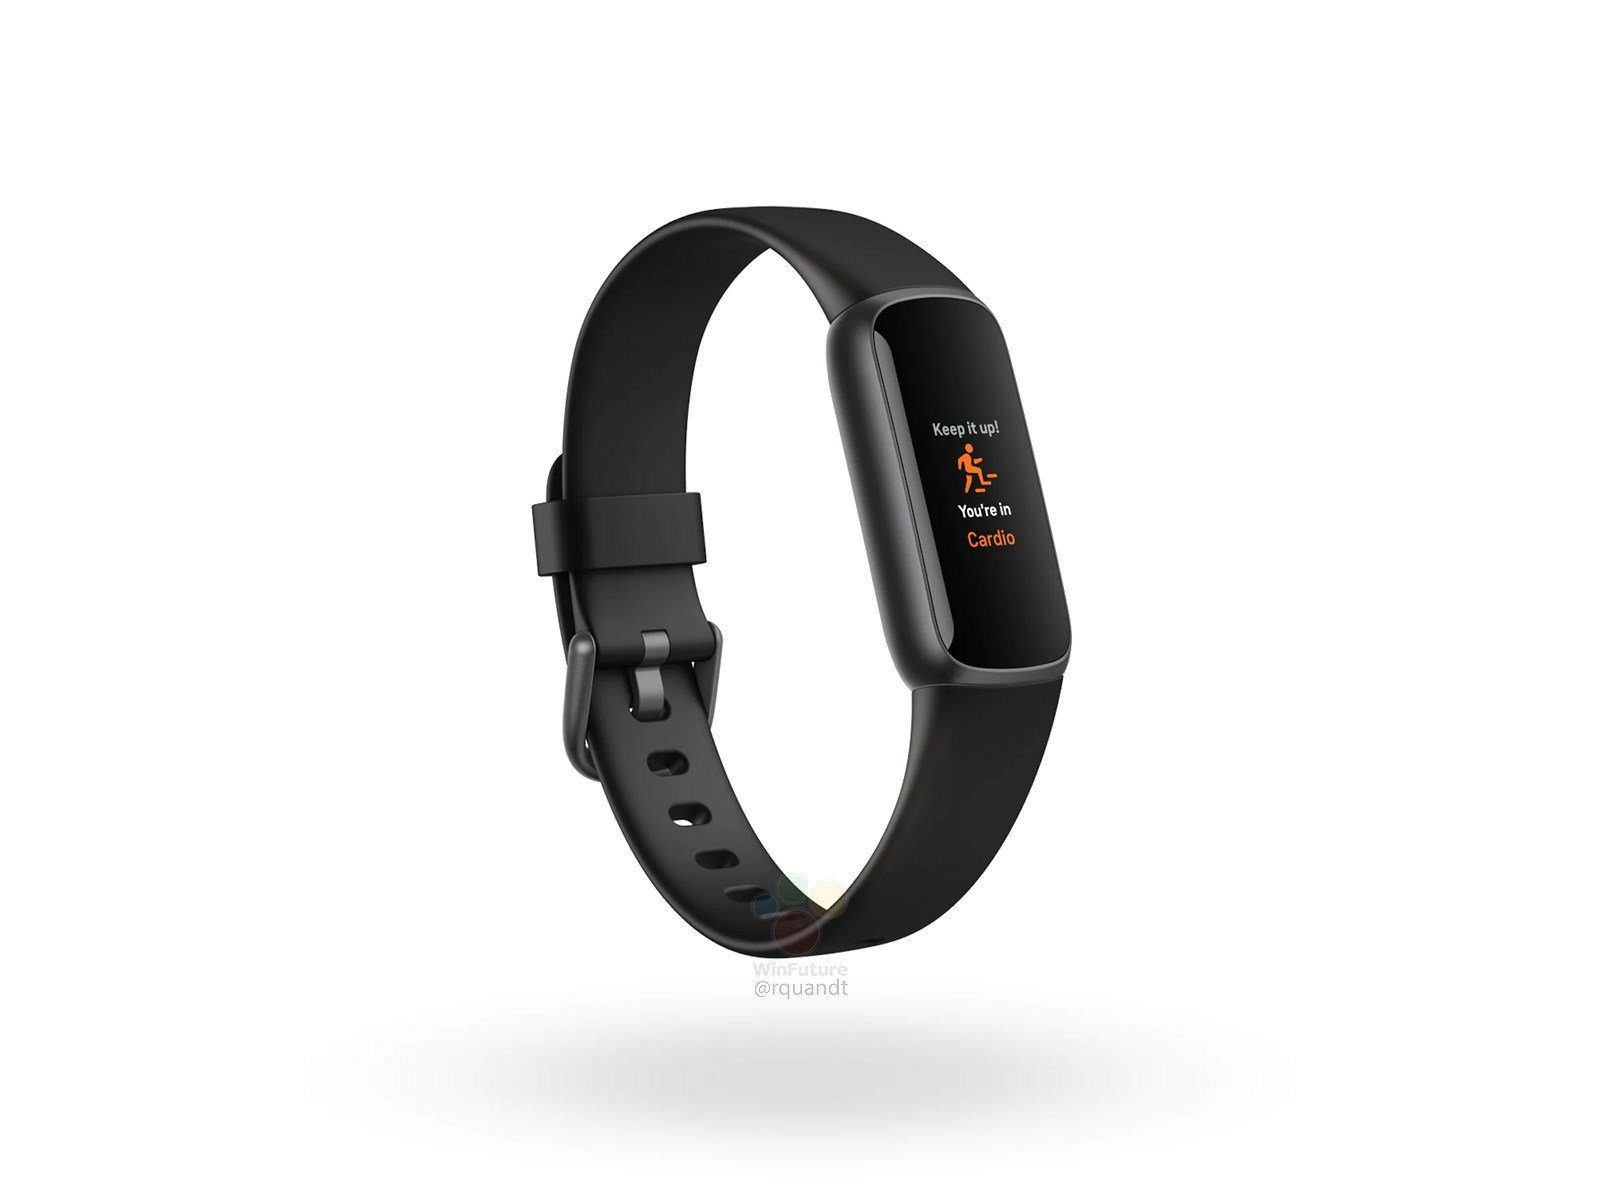 Fitbit Luxe Leaked Images Reveal Slim Design